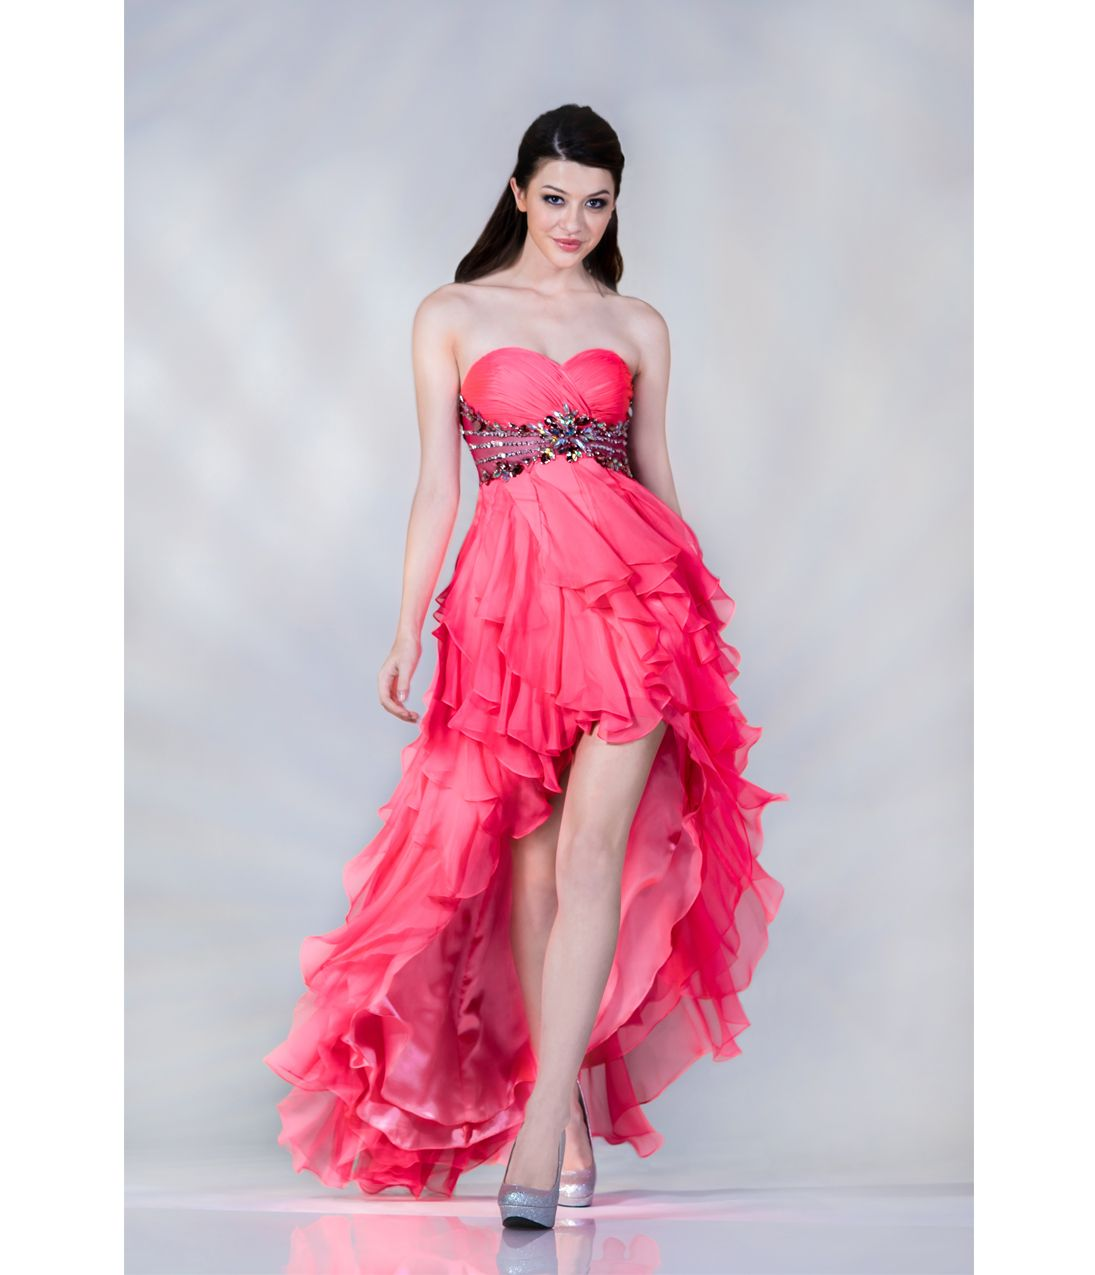 2013 Prom Dresses- Hot Pink High-Low Ruffle Gown - Unique Vintage ...